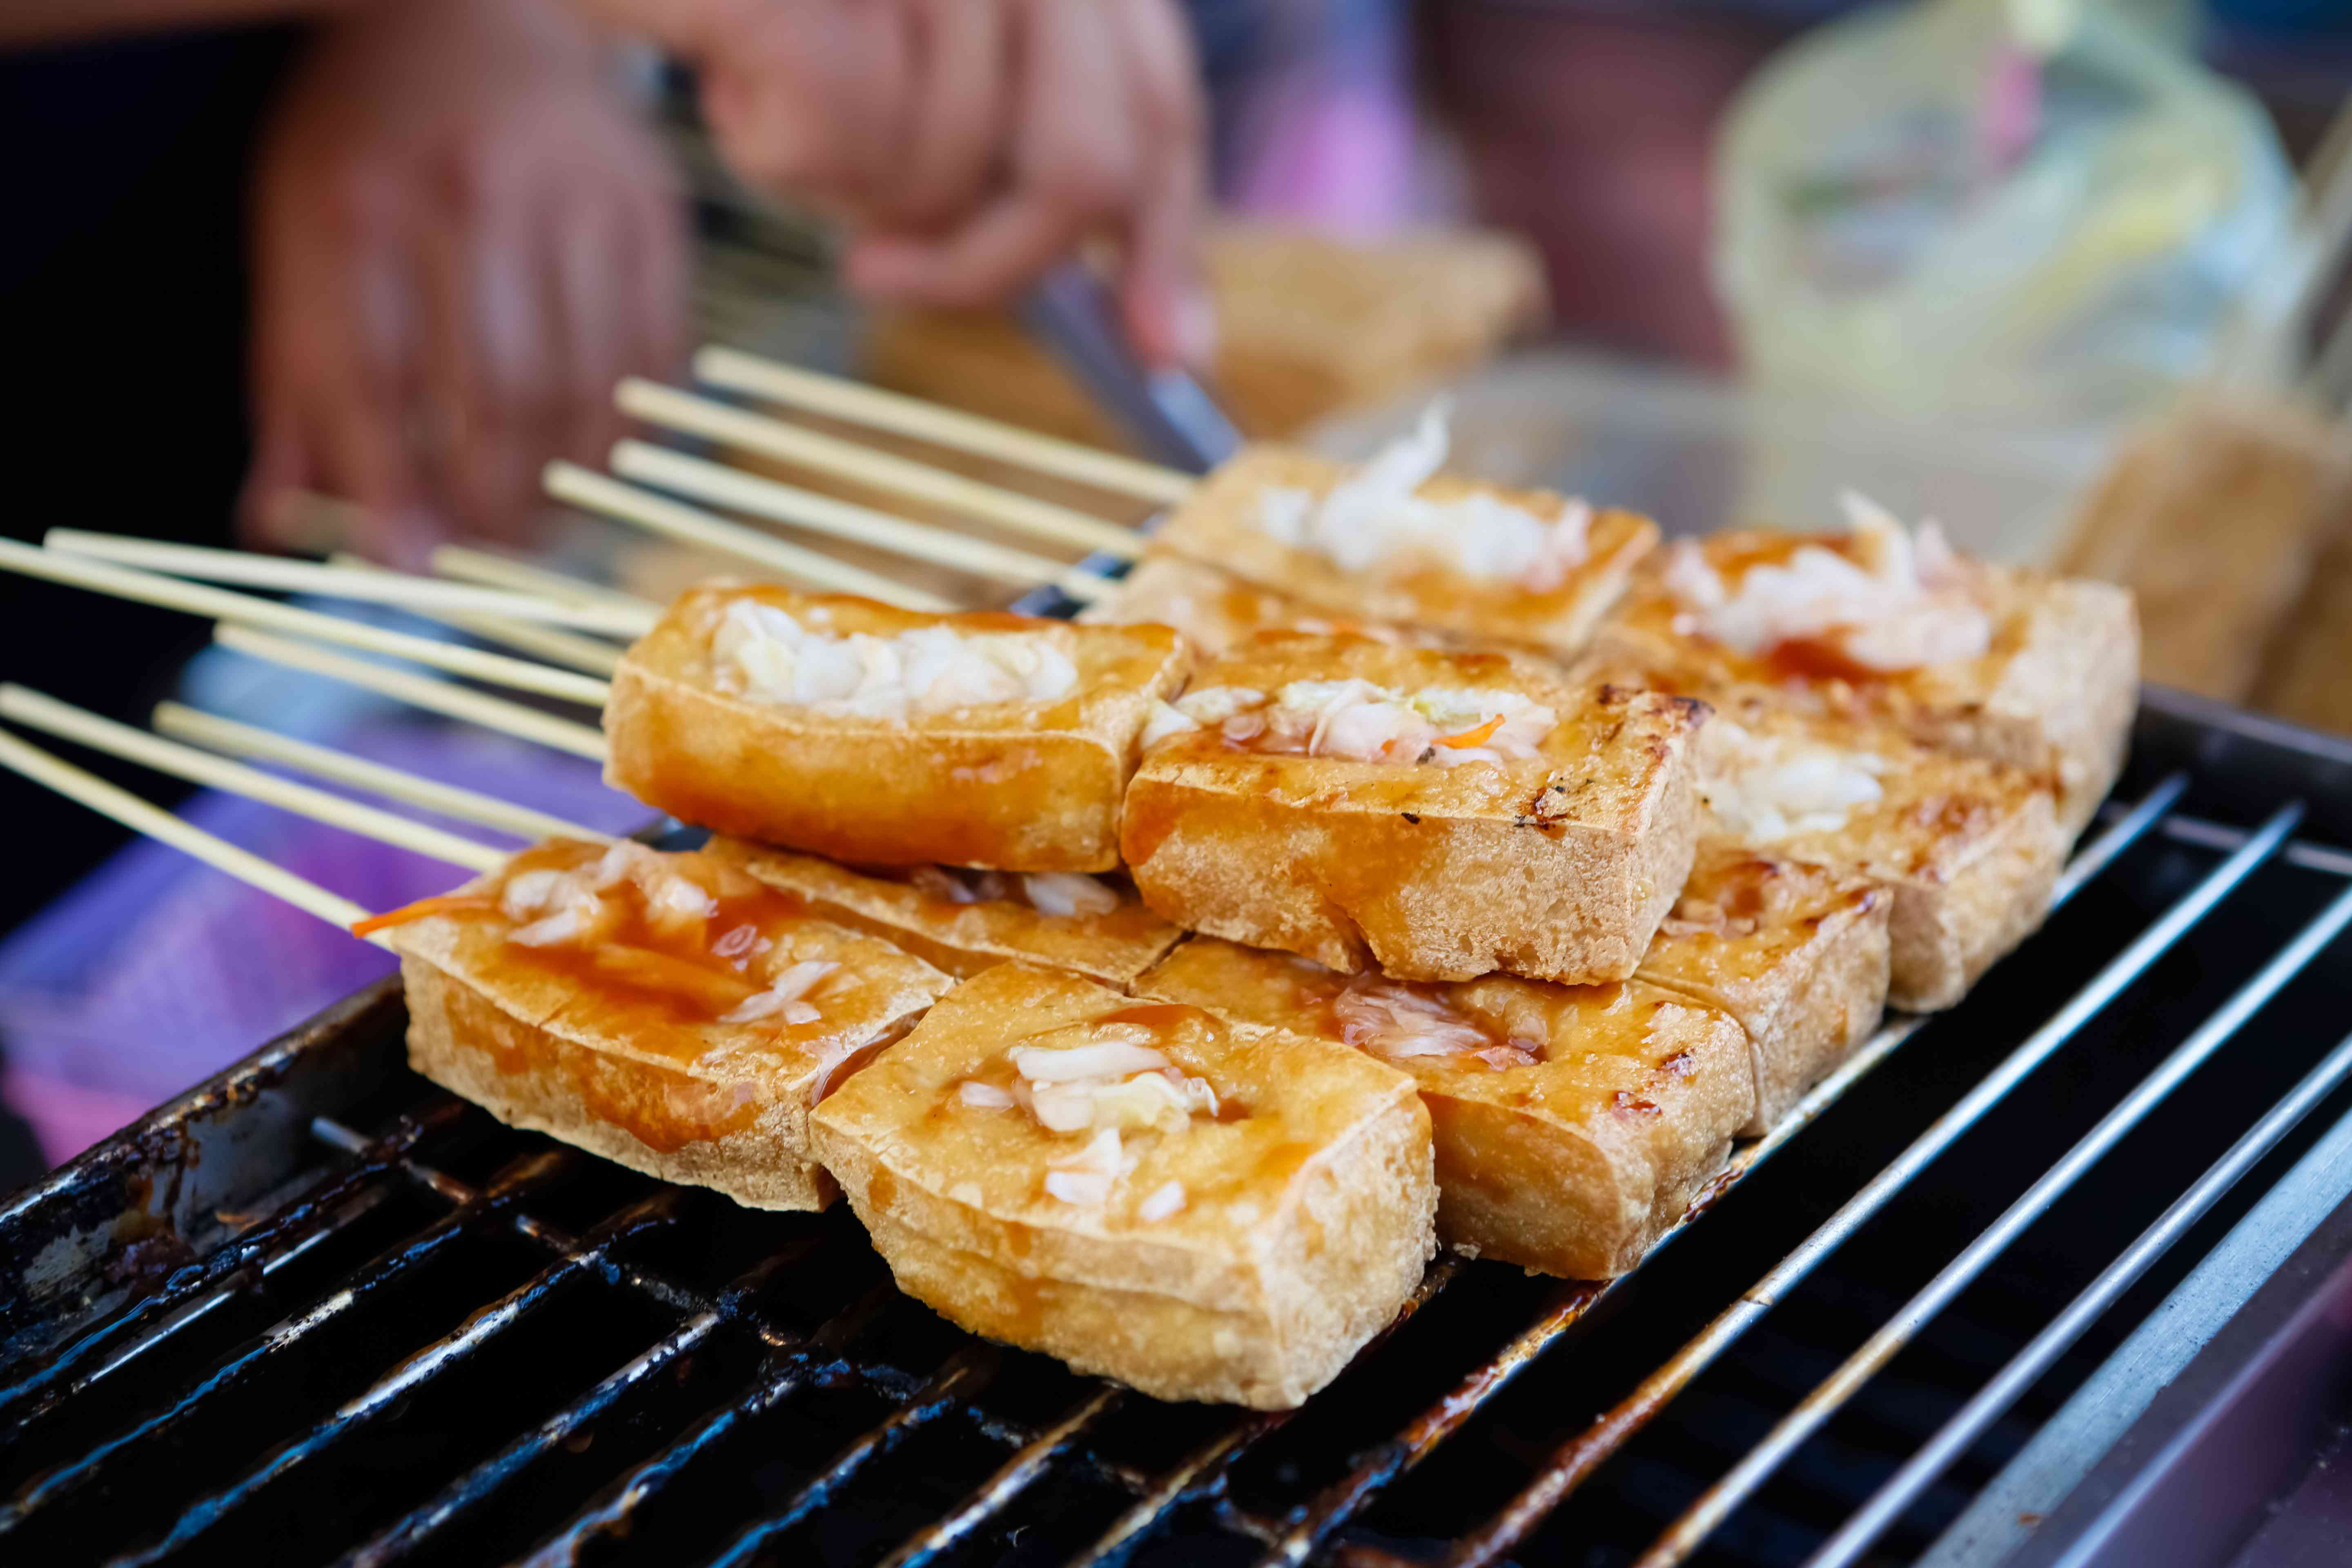 skewers of stinky tofu on a grill